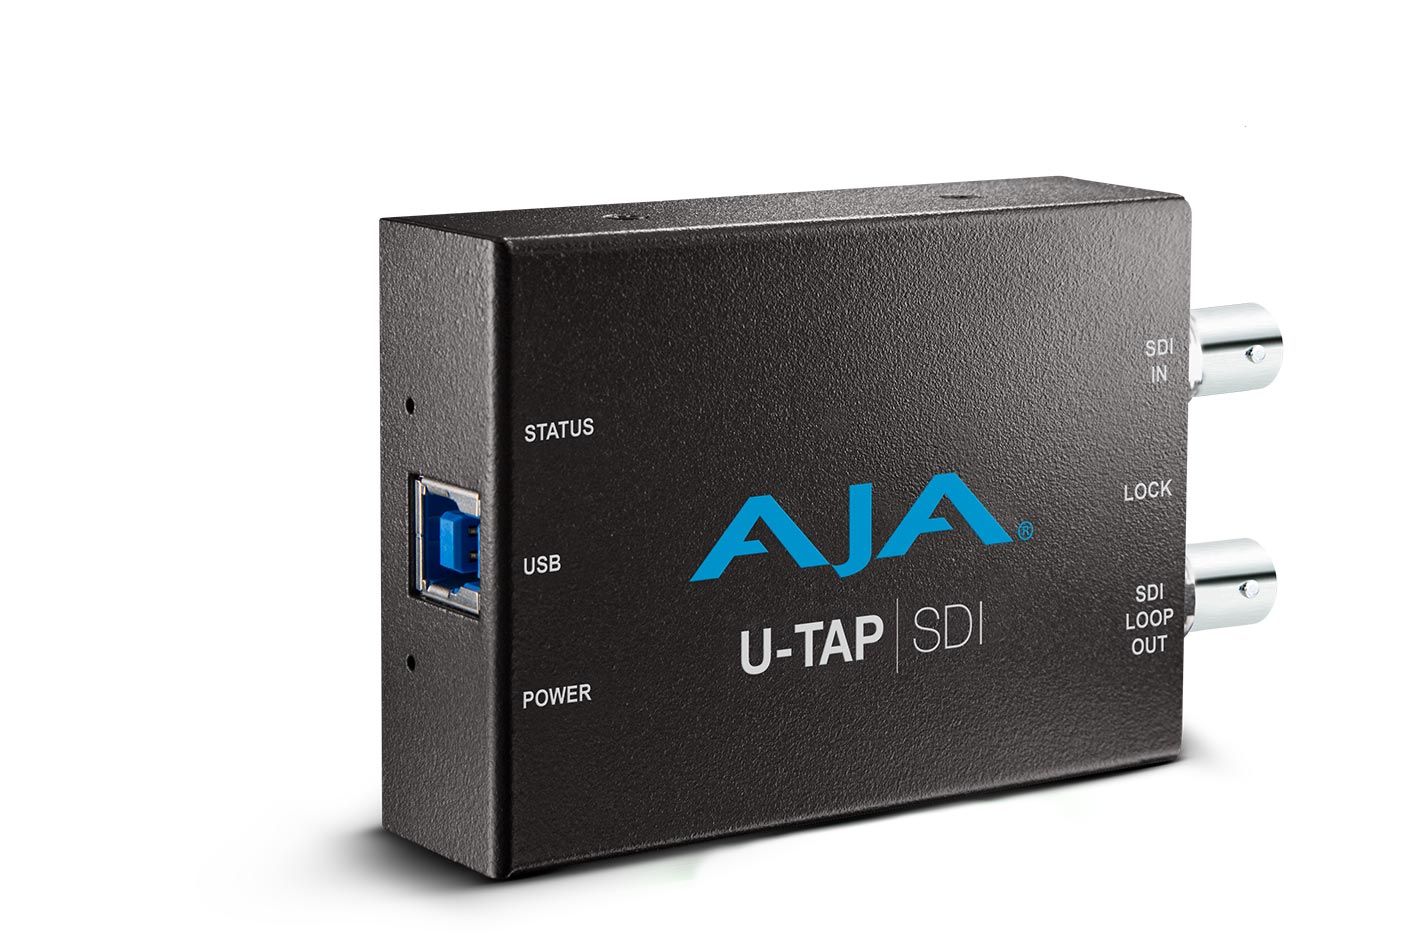 AJA U-TAP, a tool for remote interview production